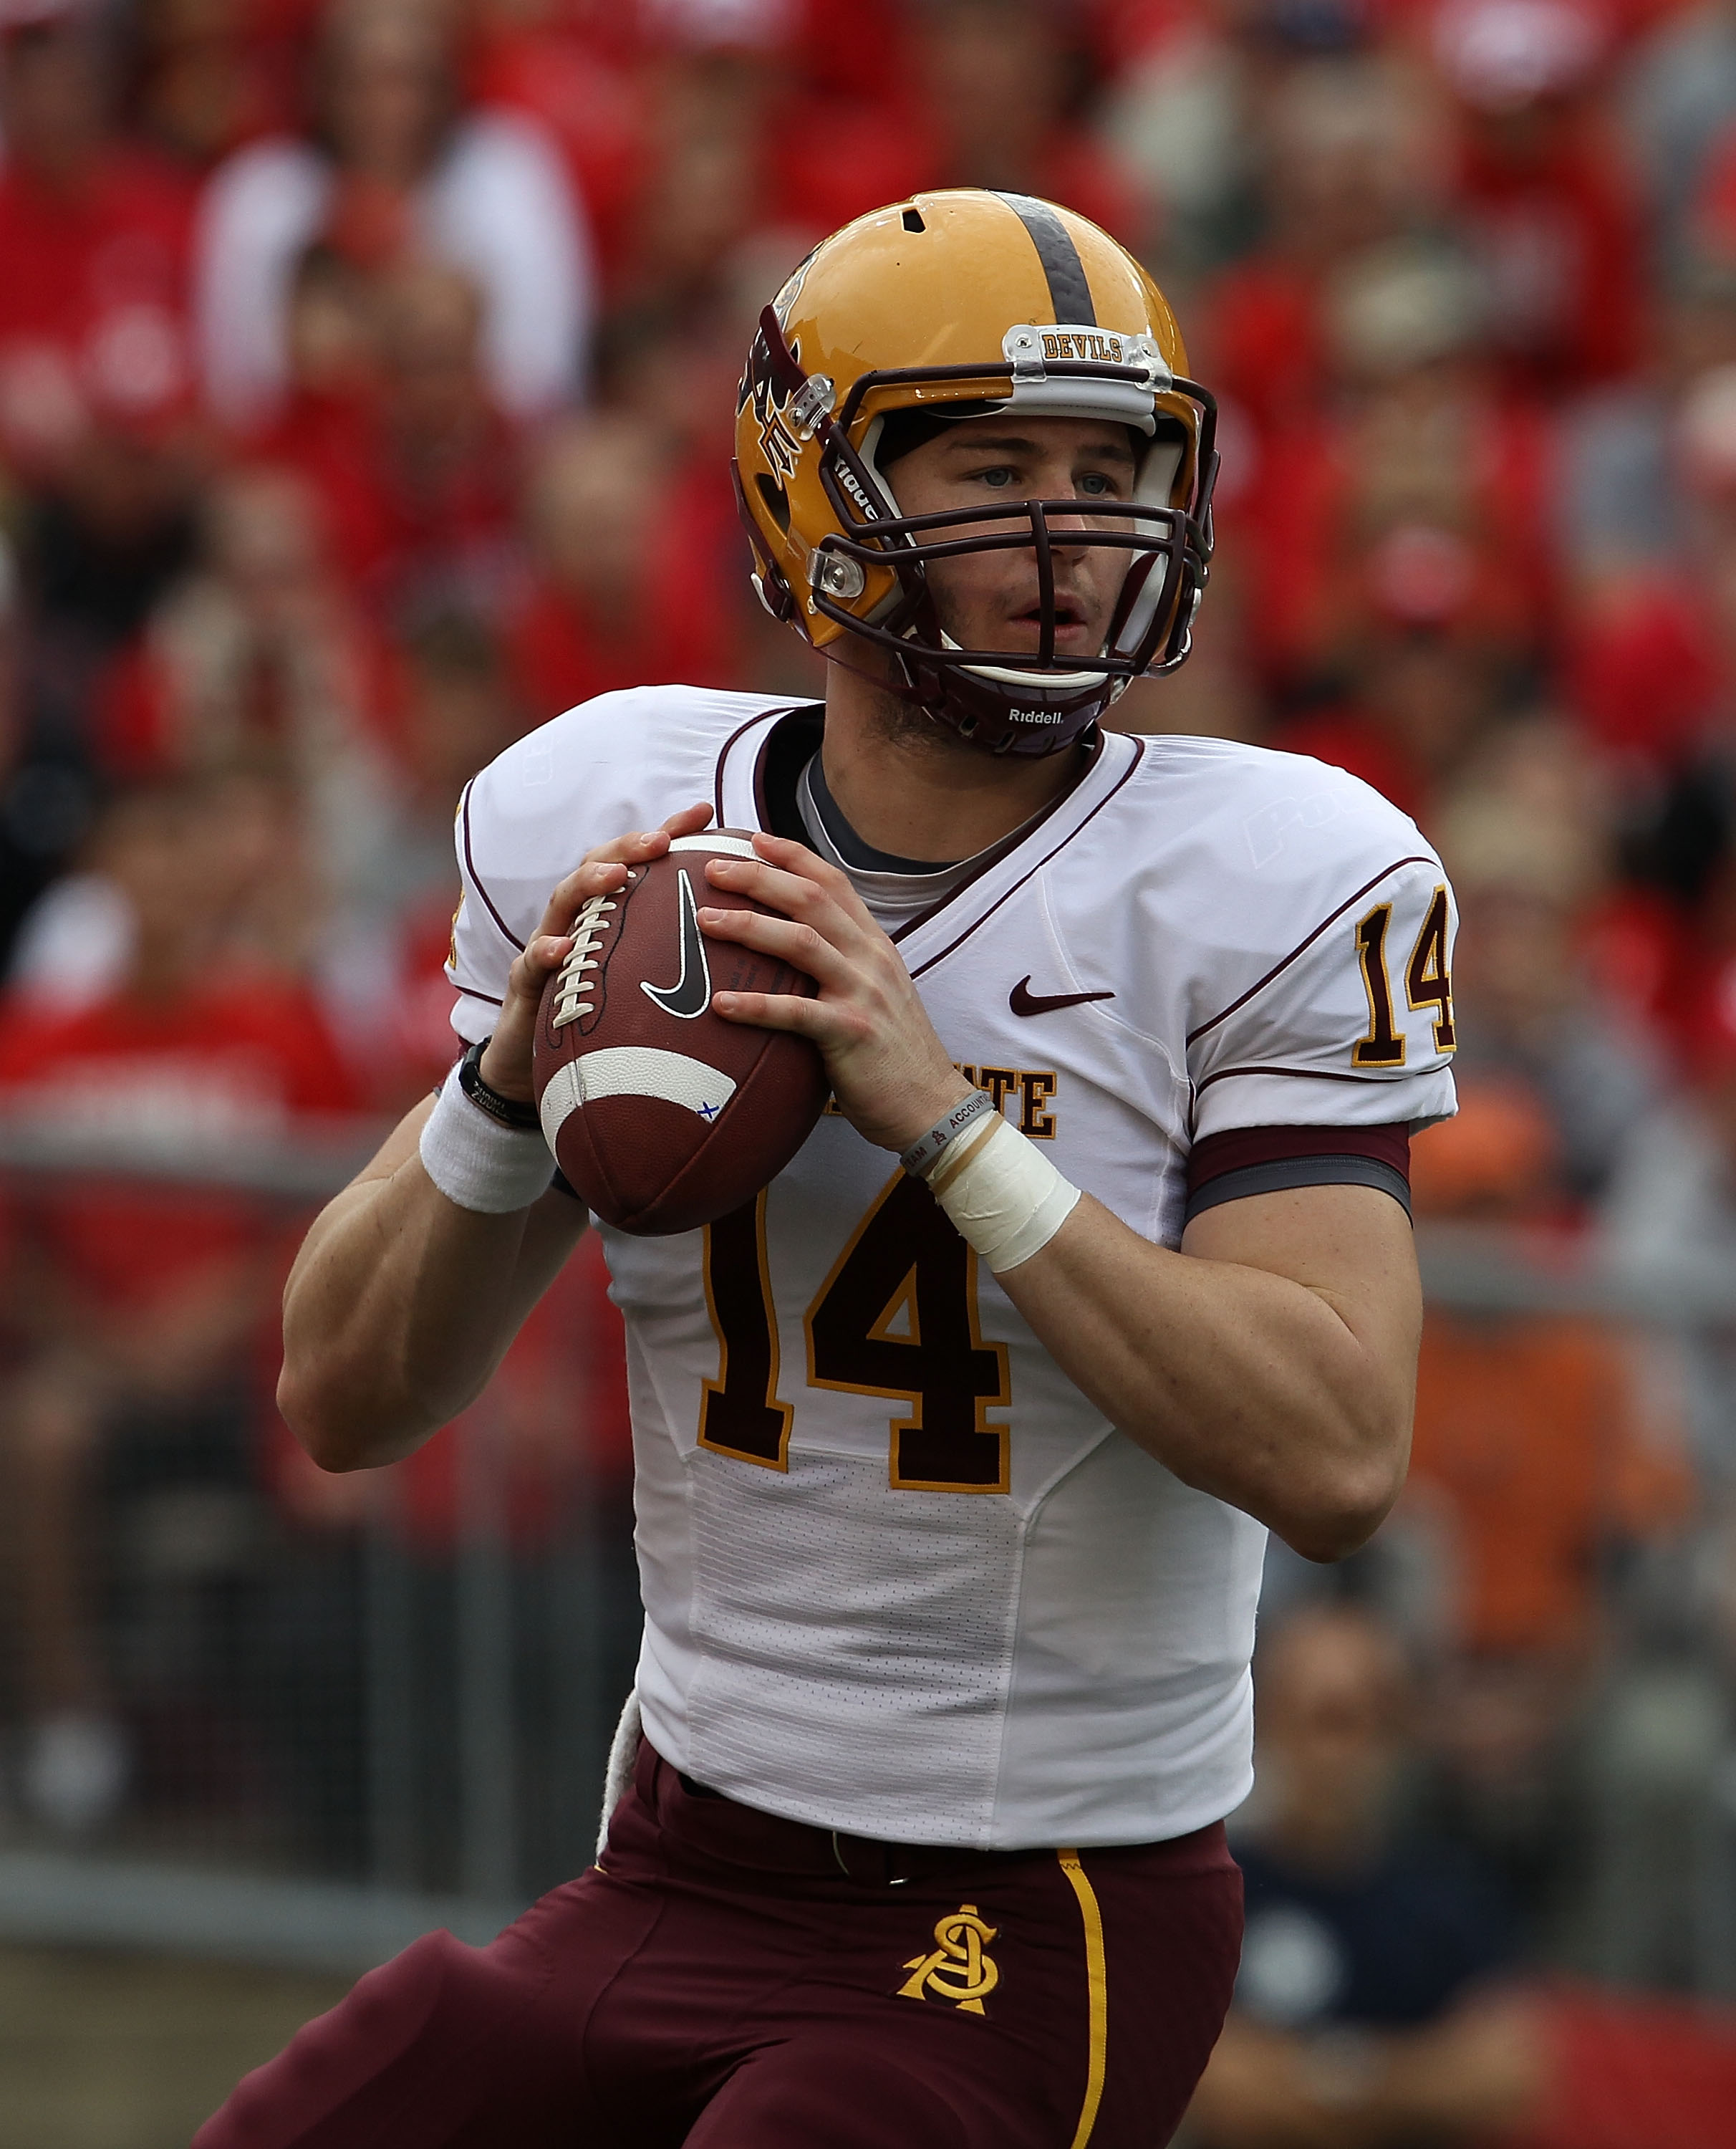 MADISON, WI - SEPTEMBER 18: Steven Threet #14 of the Arizona State Sun Devils looks for a receiver against the Wisconsin Badgers at Camp Randall Stadium on September 18, 2010 in Madison, Wisconsin. Wisconsin defeated Arizona State 20-19.  (Photo by Jonath